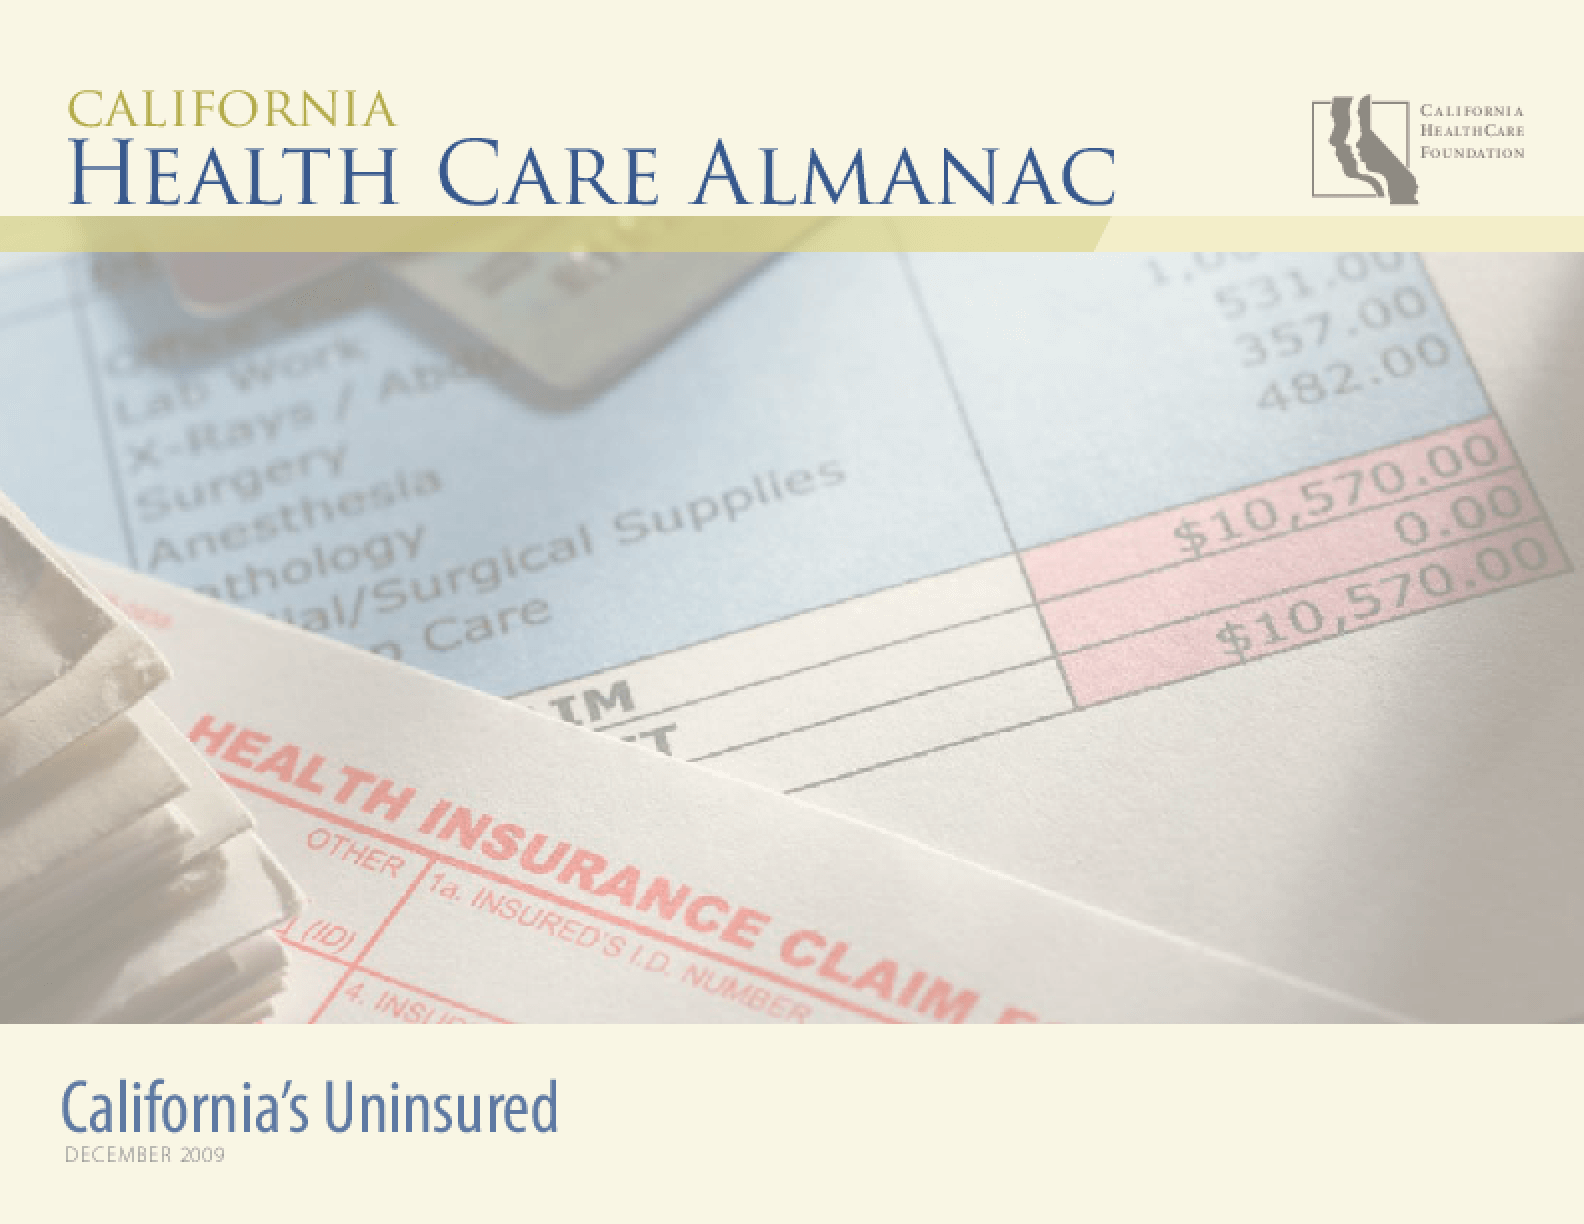 California's Uninsured